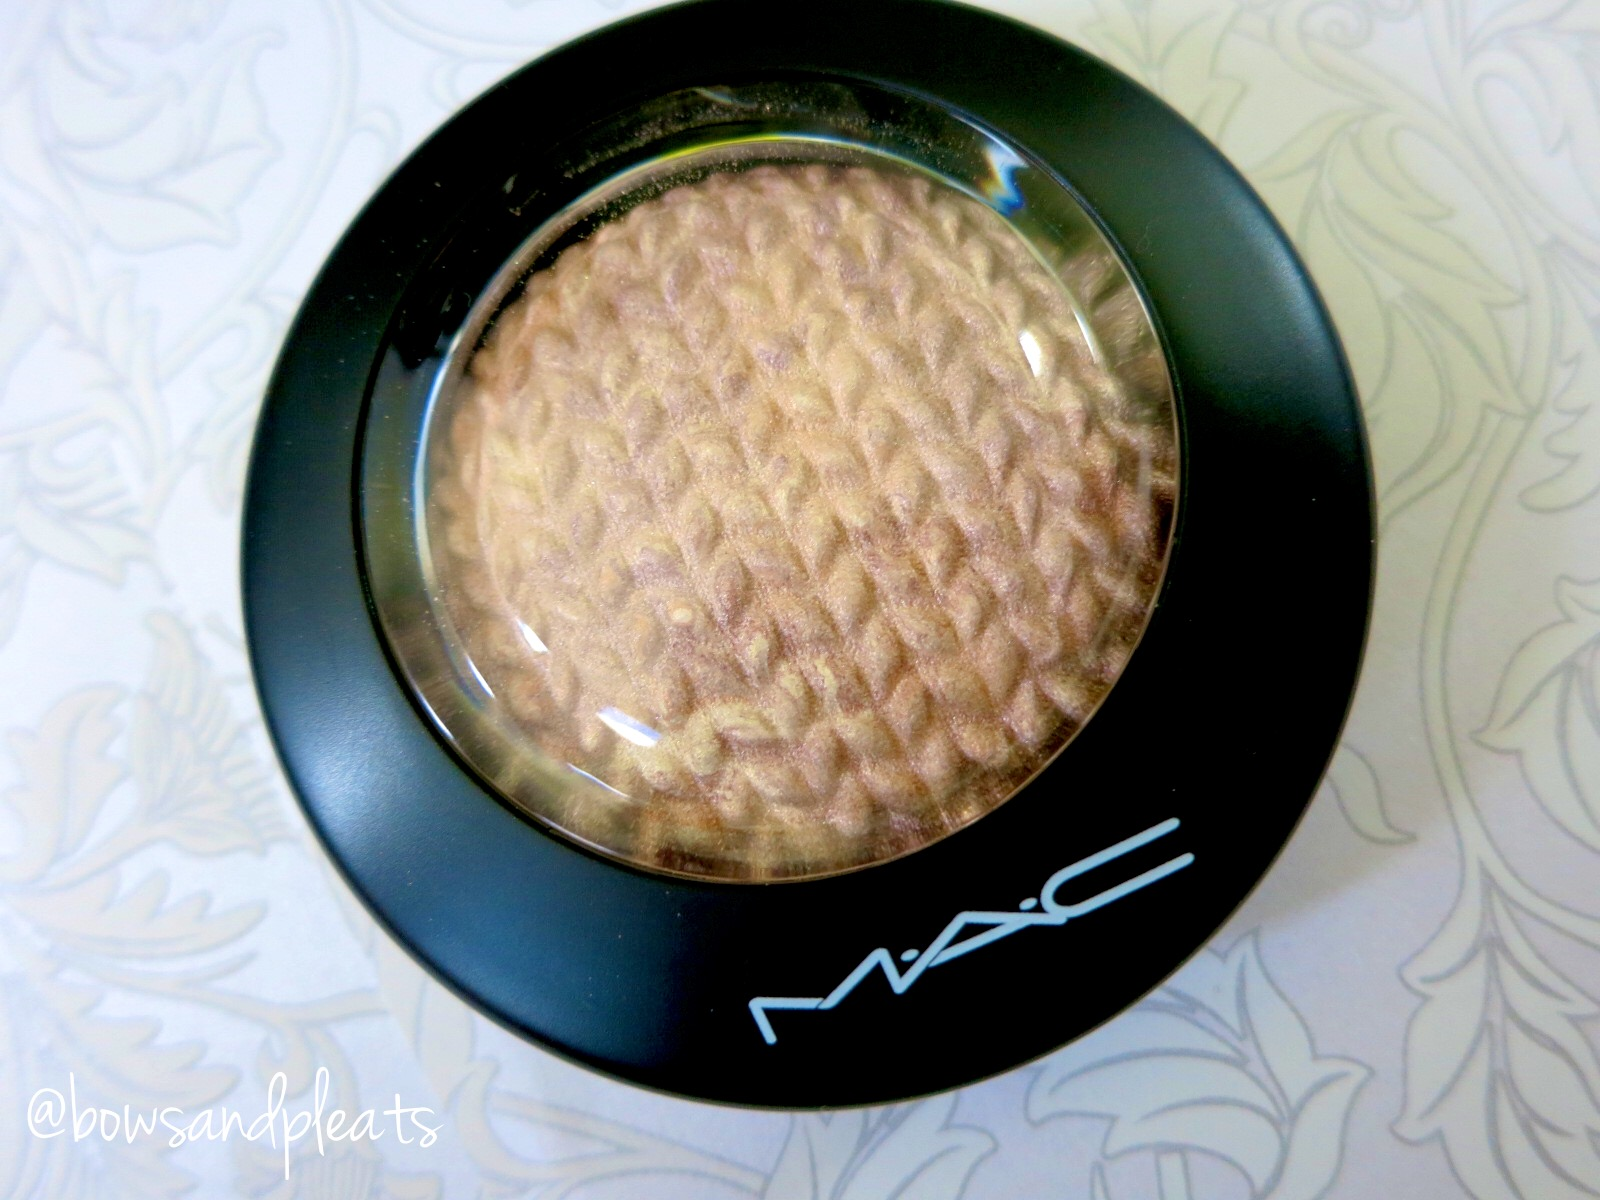 Mac Cosmetics Mineralize Skinfinish in Perfect Topping